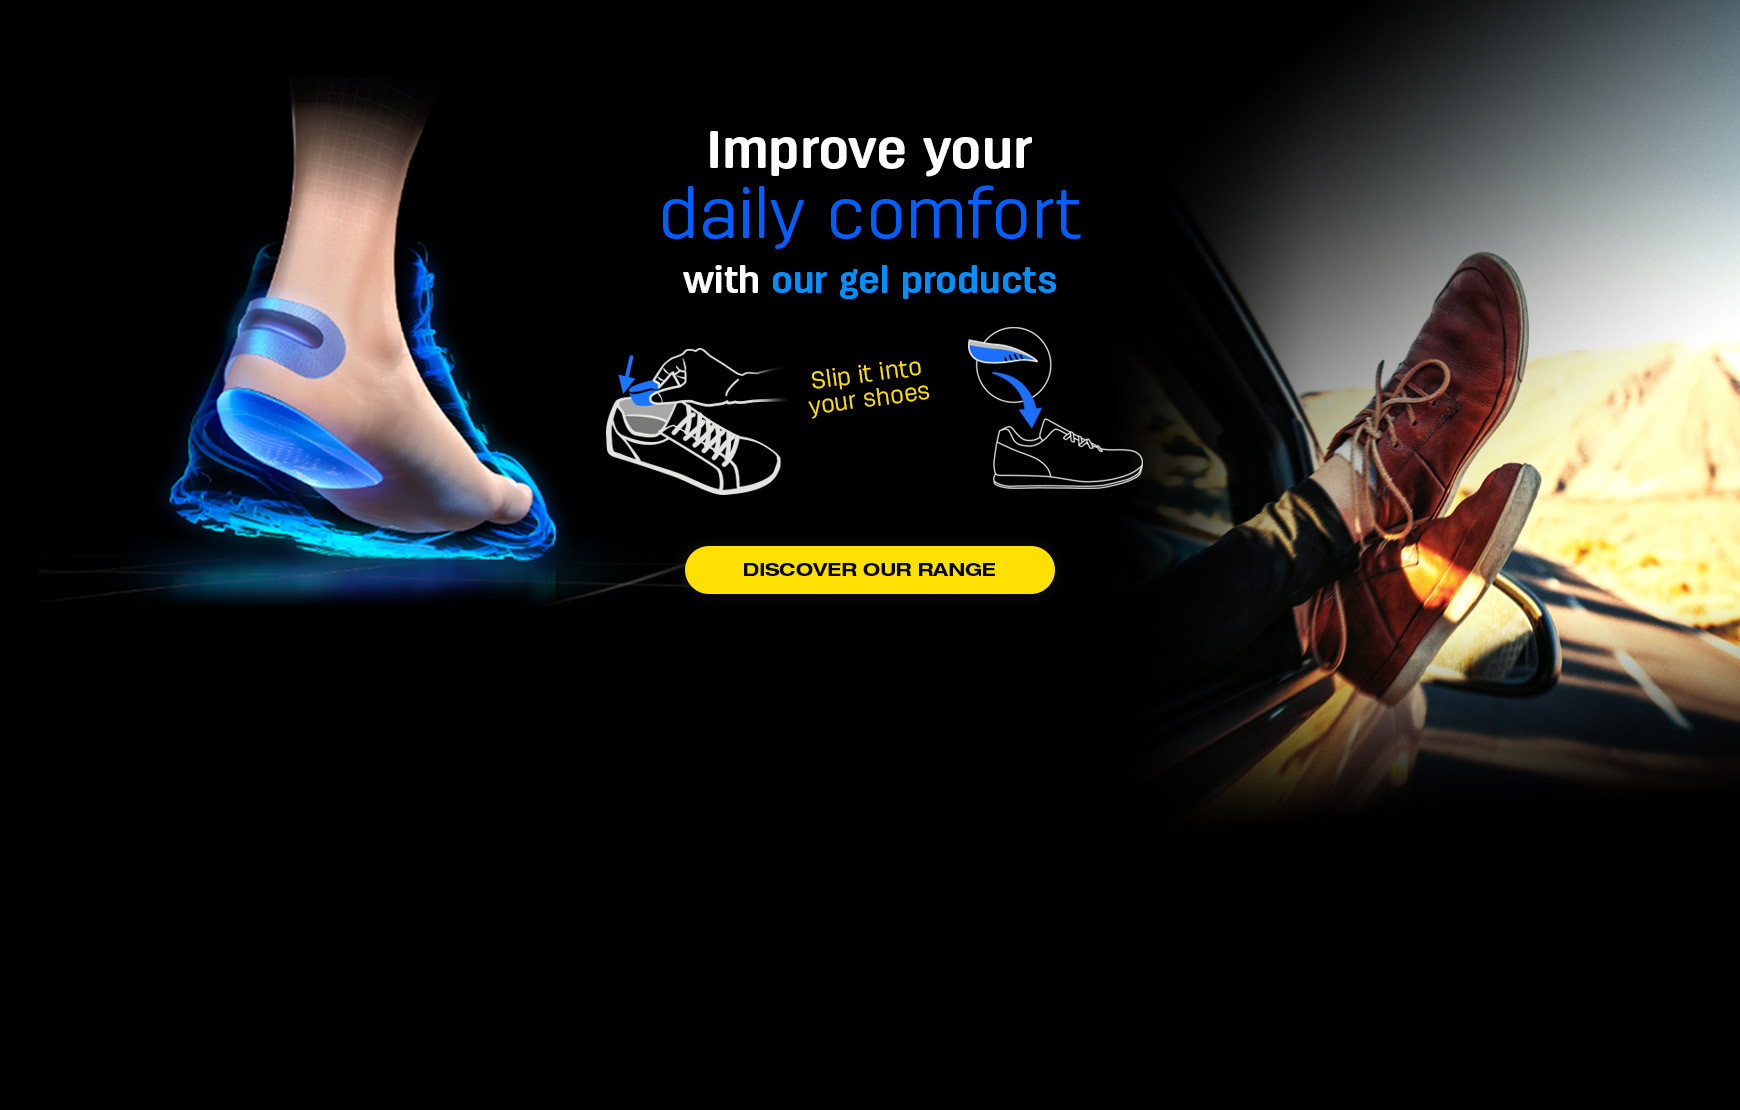 Perfect Gel products to enhance your daily comfort in your shoes